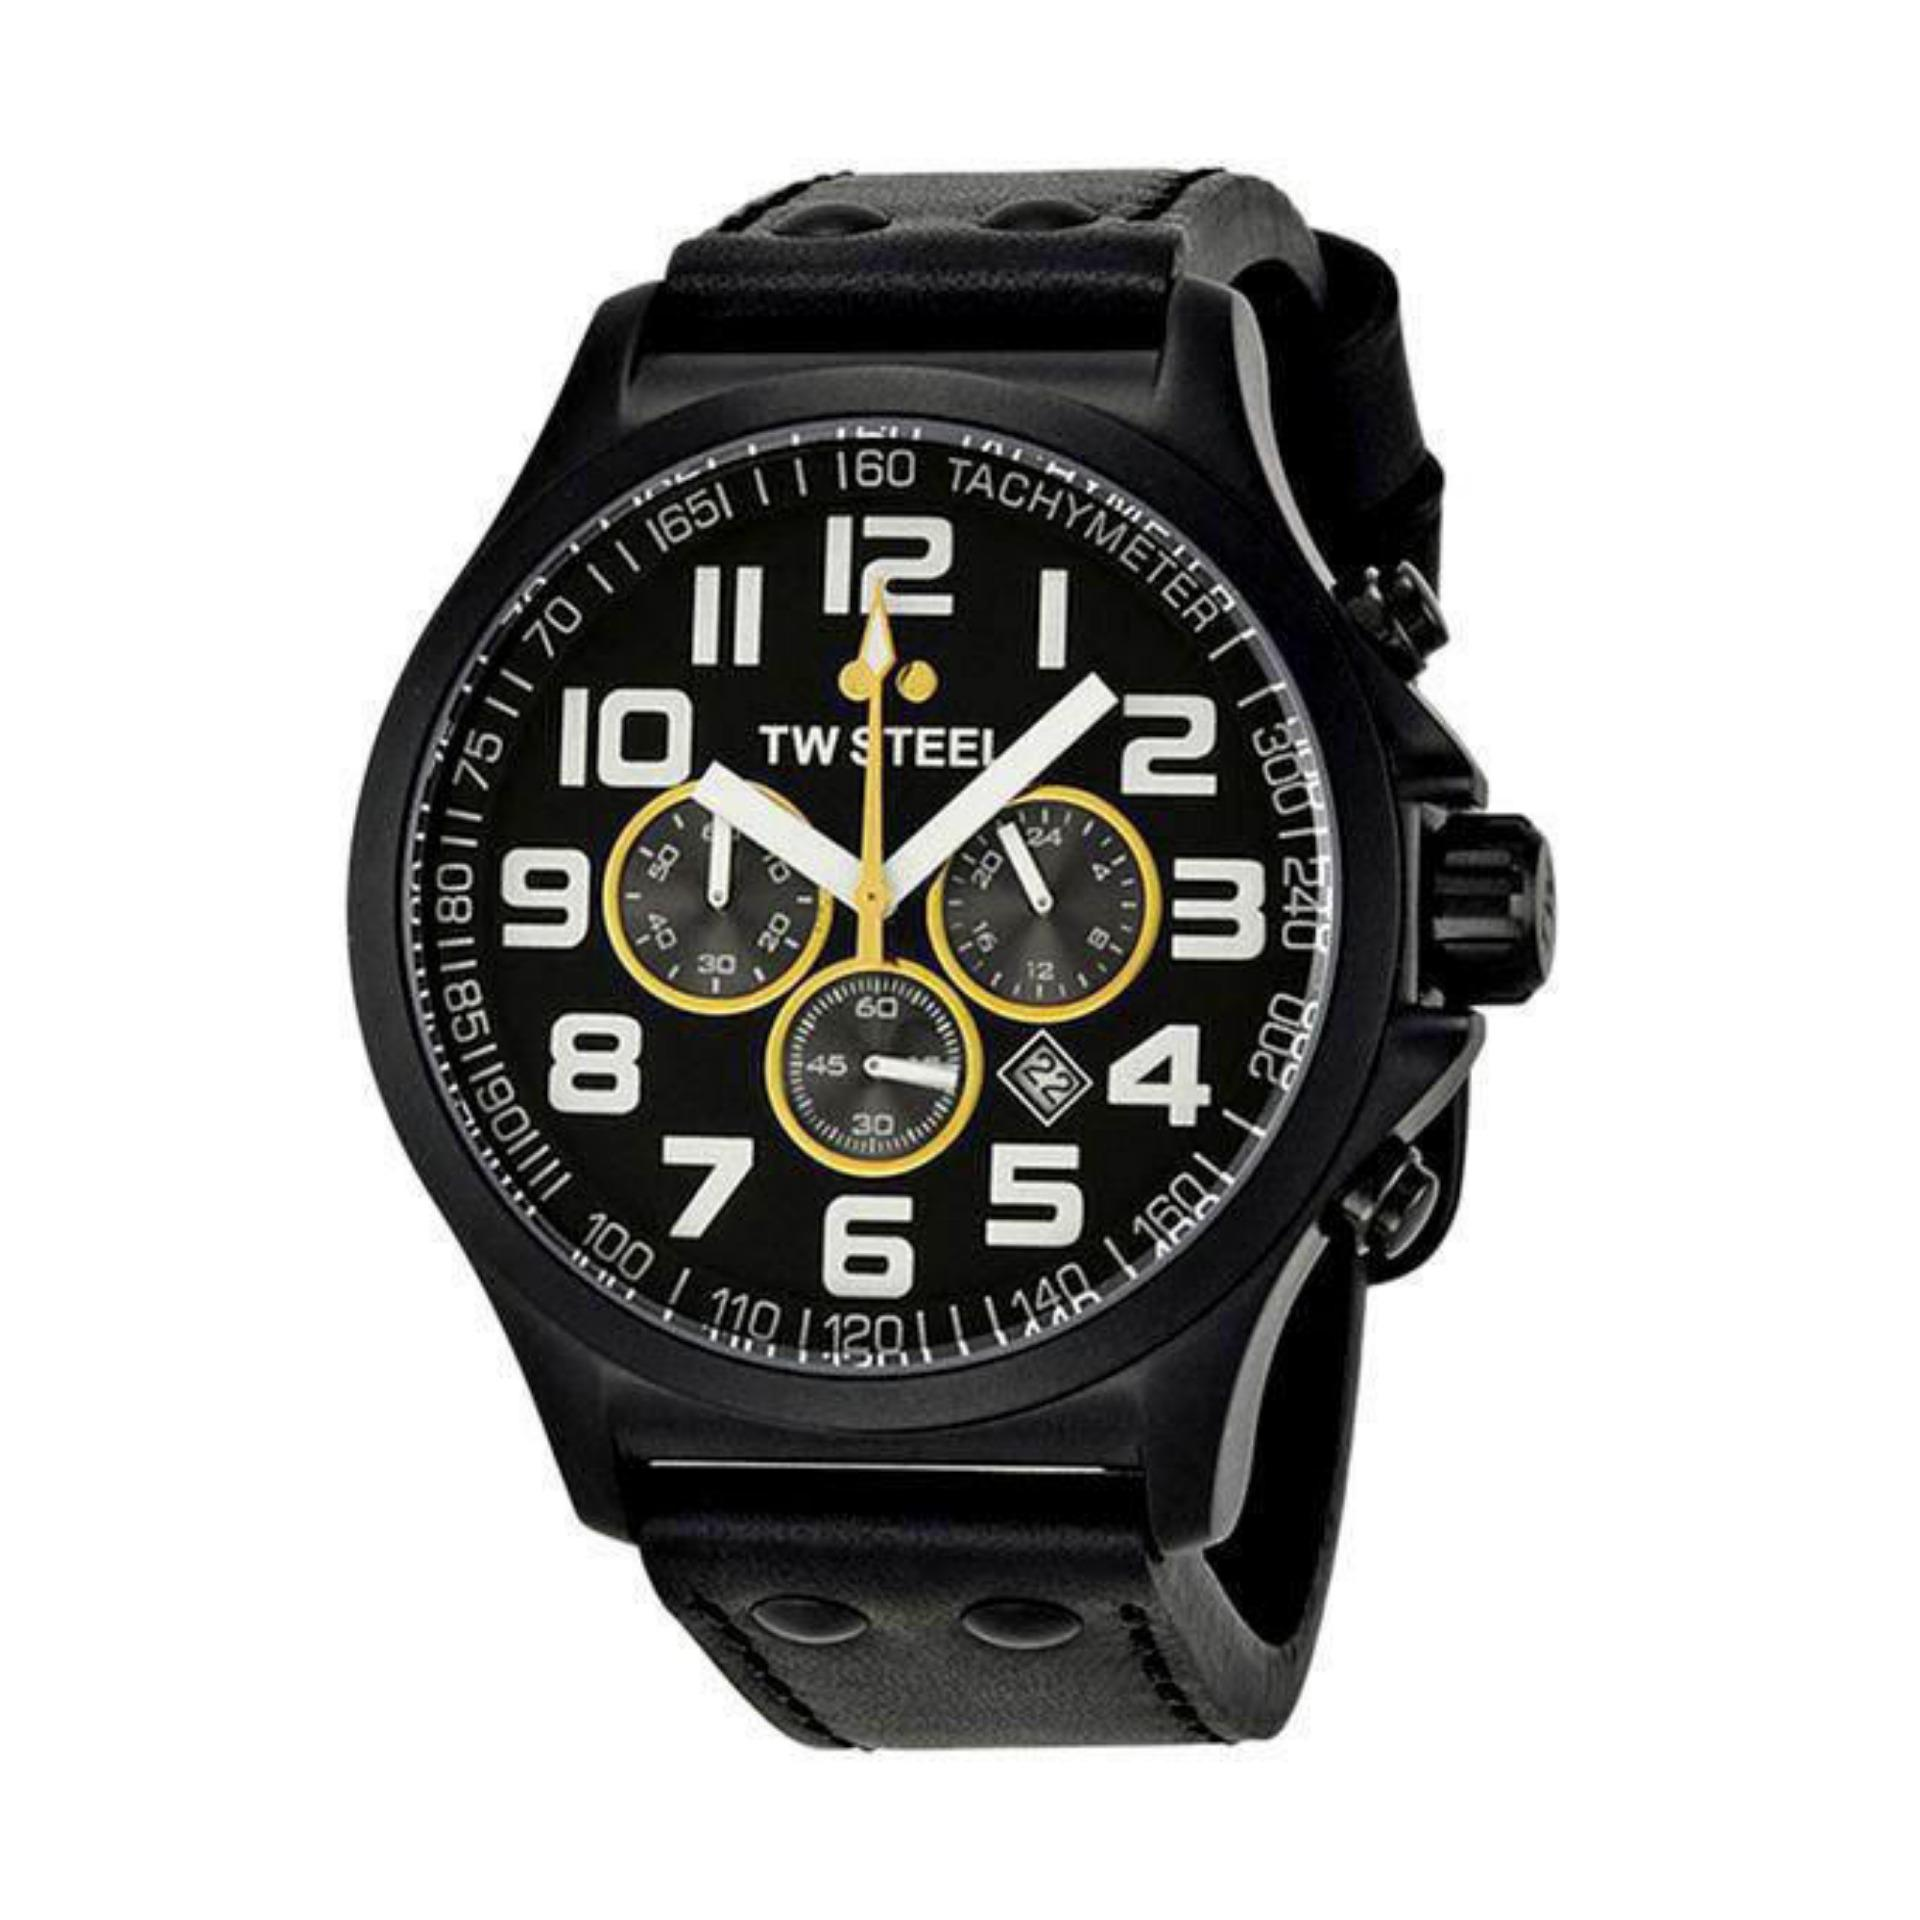 TW677R Leather Chronograph Watch for Men - Black